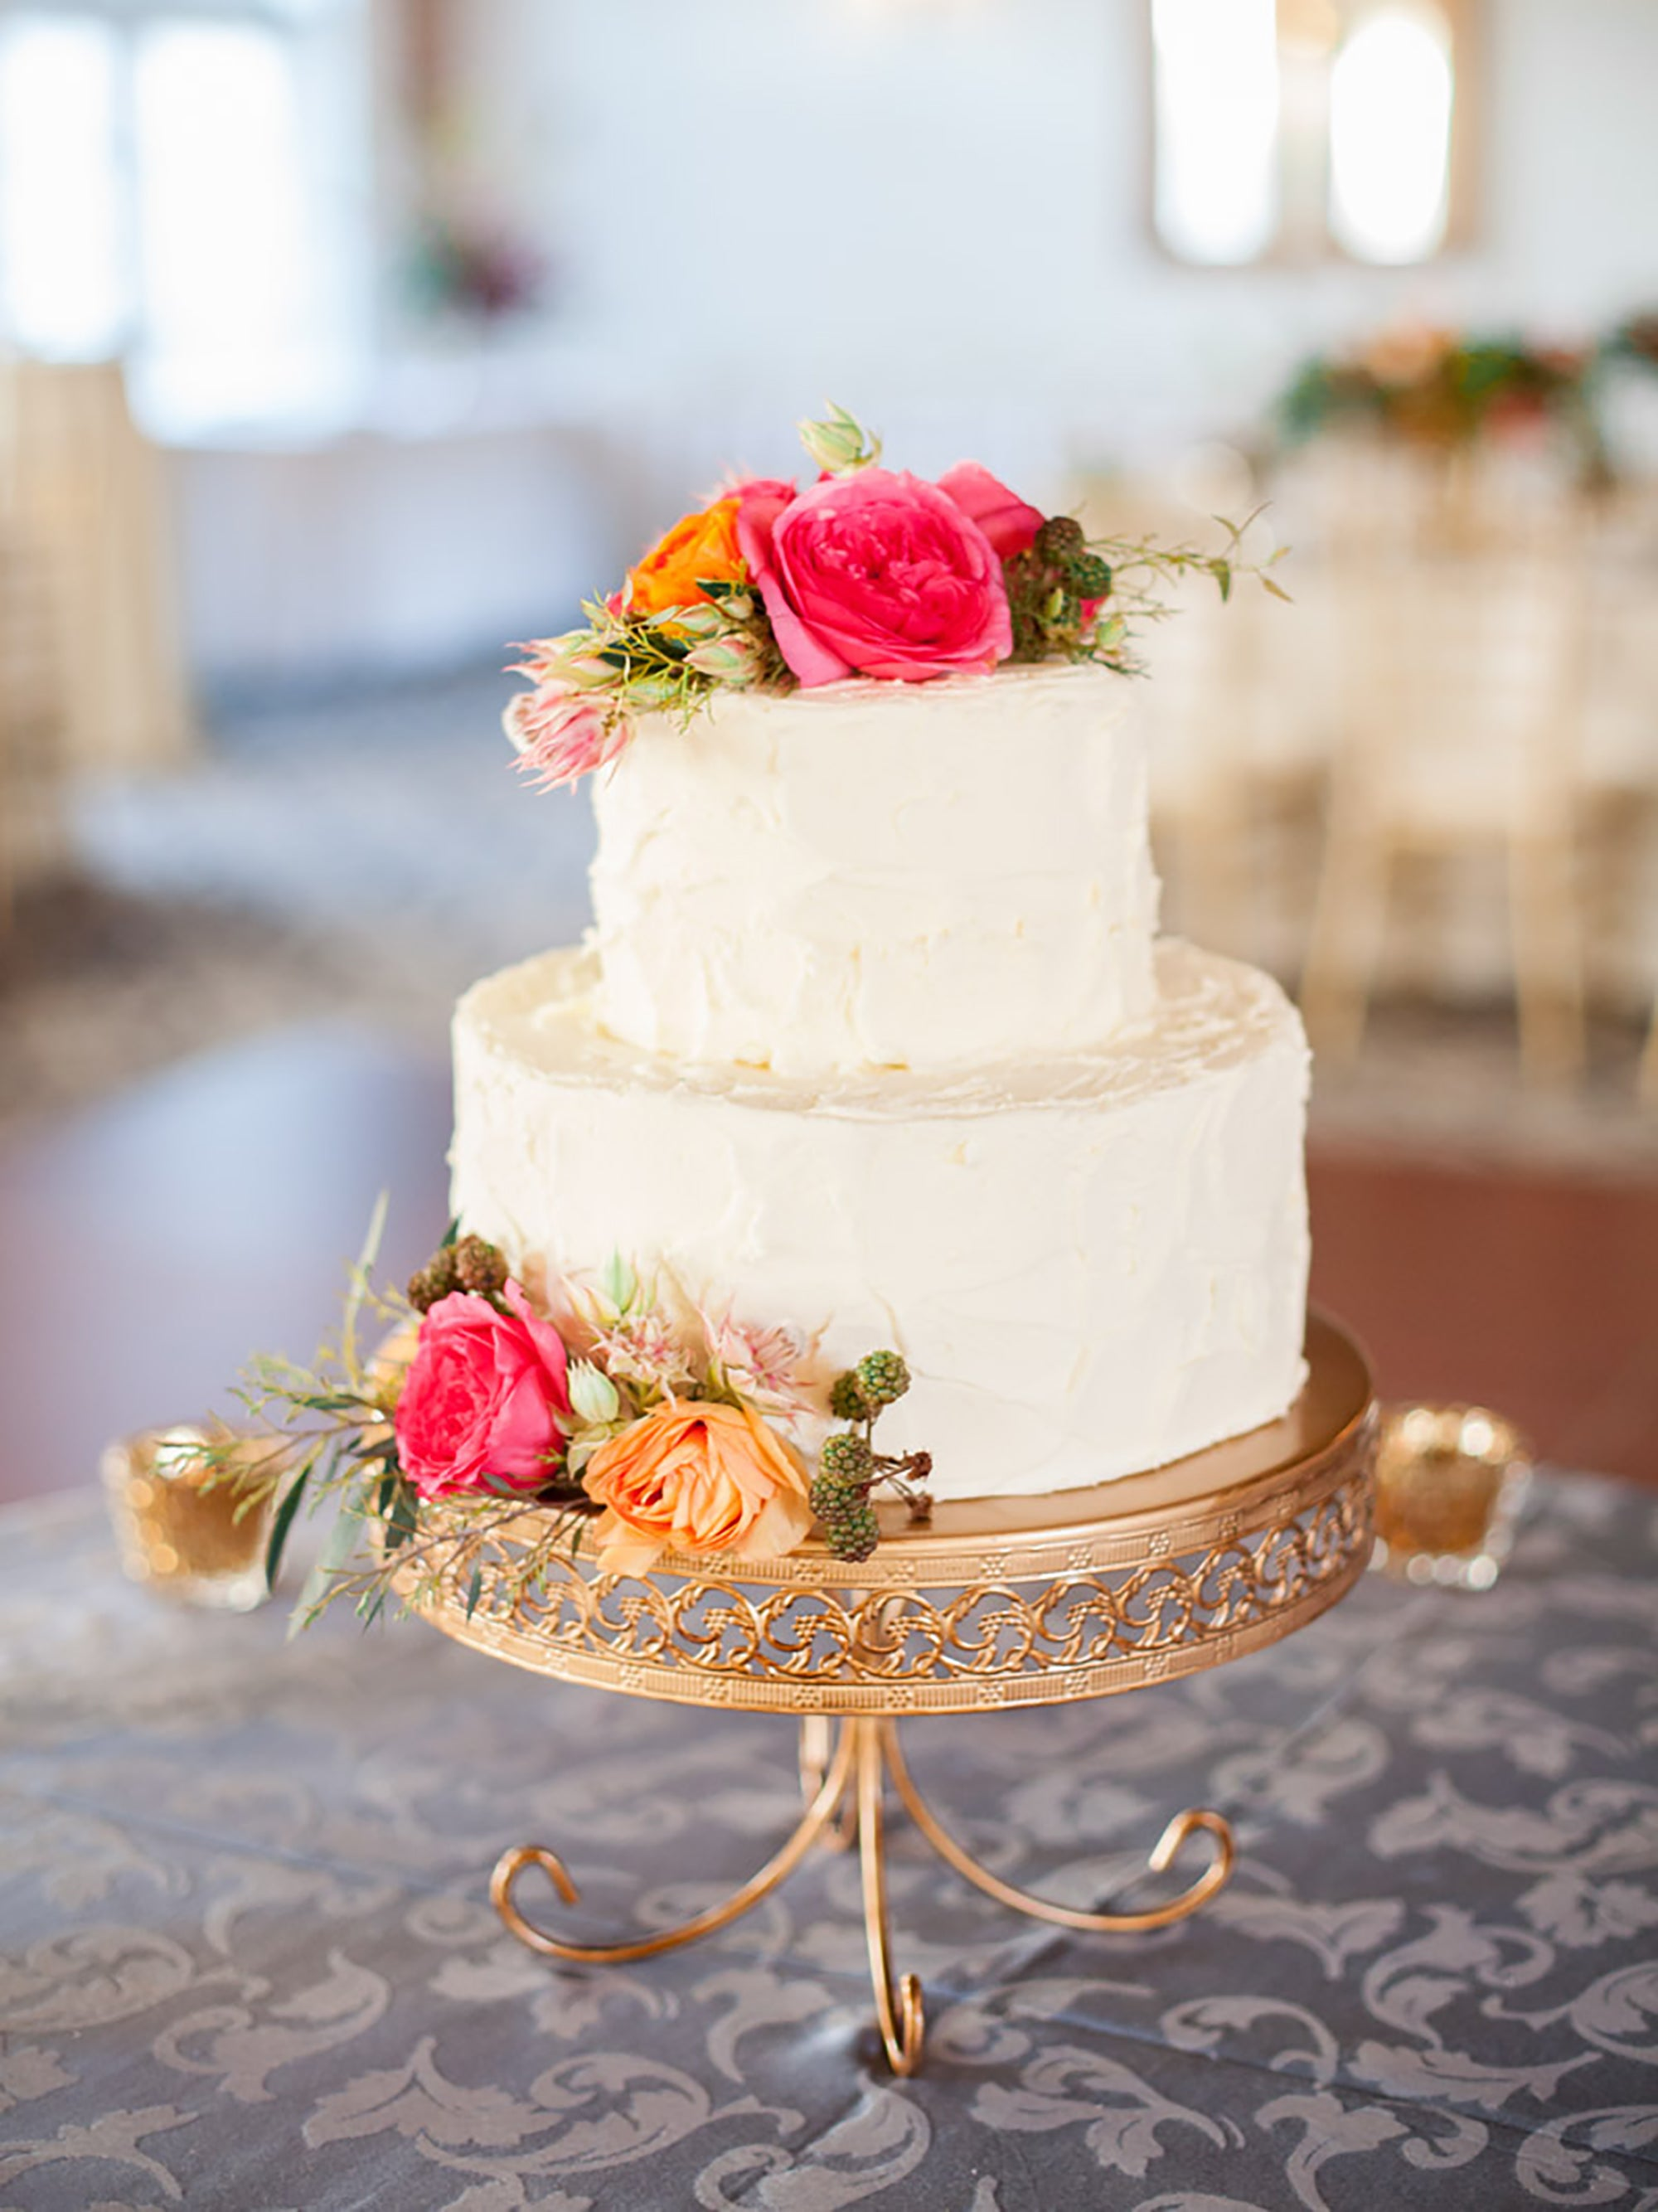 gold wedding cake stand with 2 tier ivory wedding cake